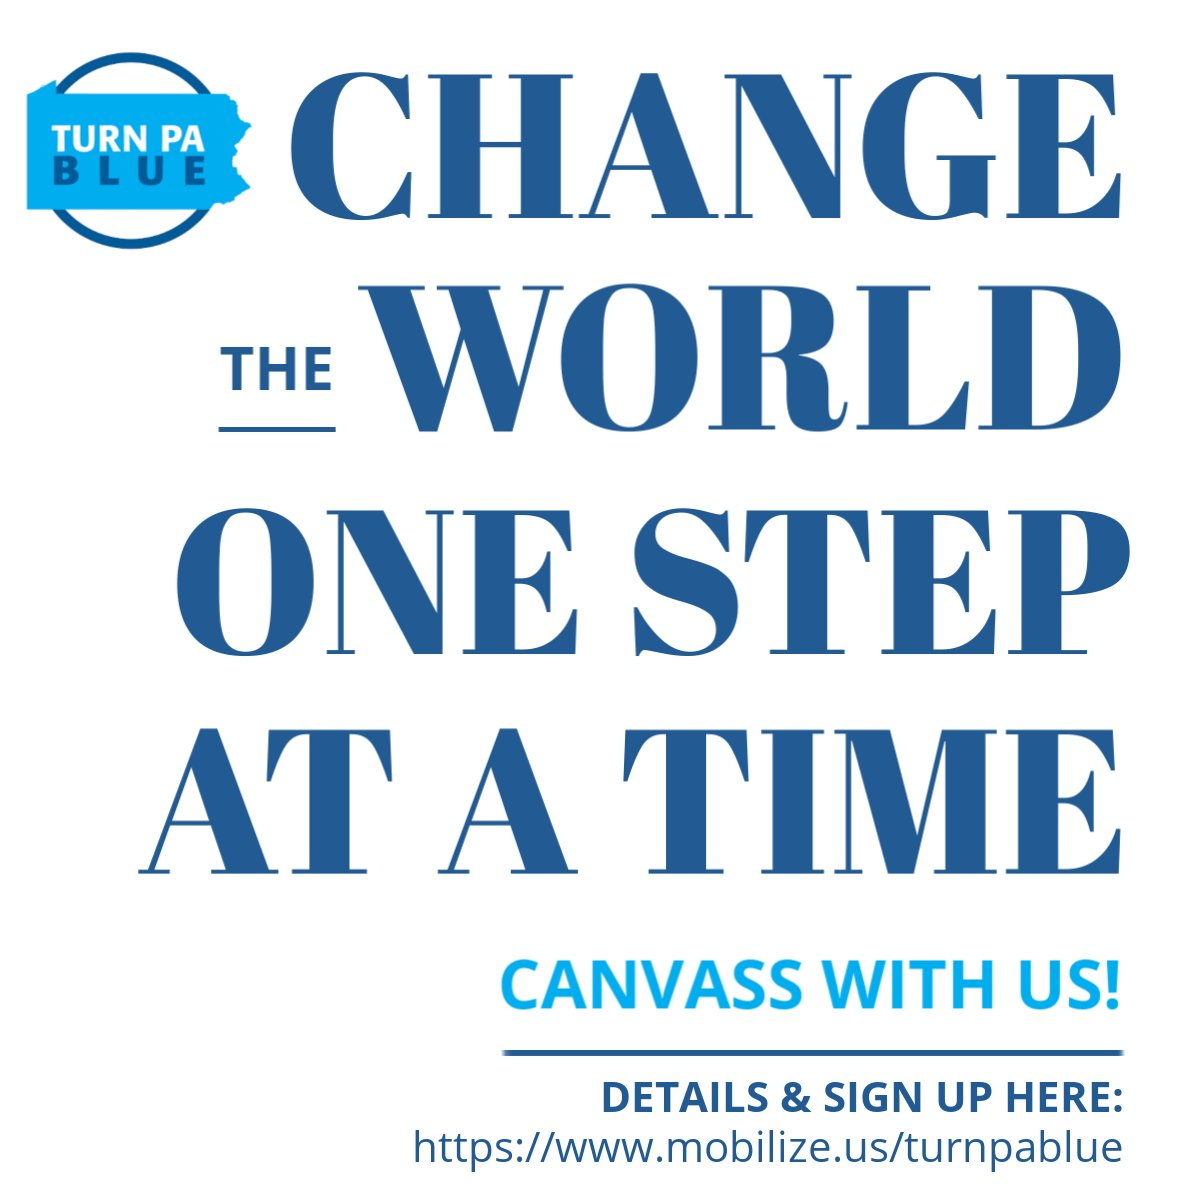 Sign up to canvass here: mobilize.us/turnpablue/